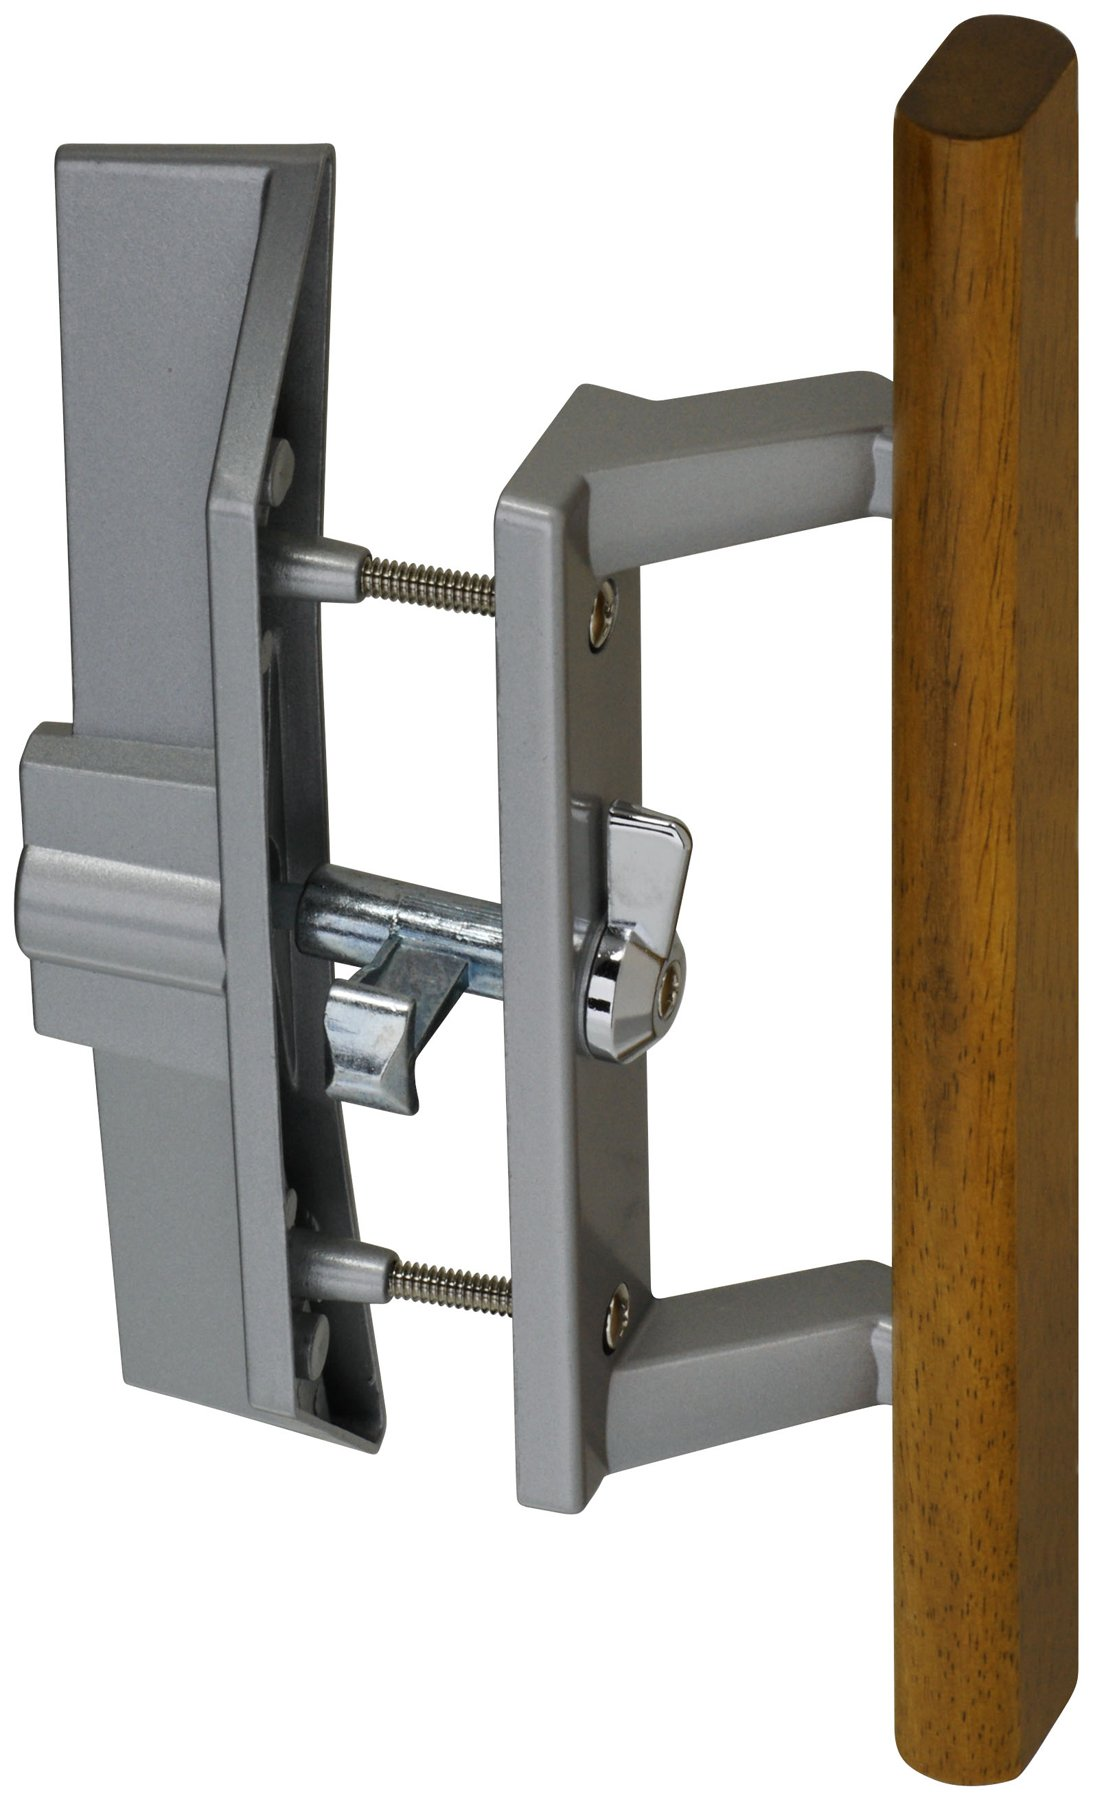 Stanley National N349-209 Locking Patio Door Handle Latch Set